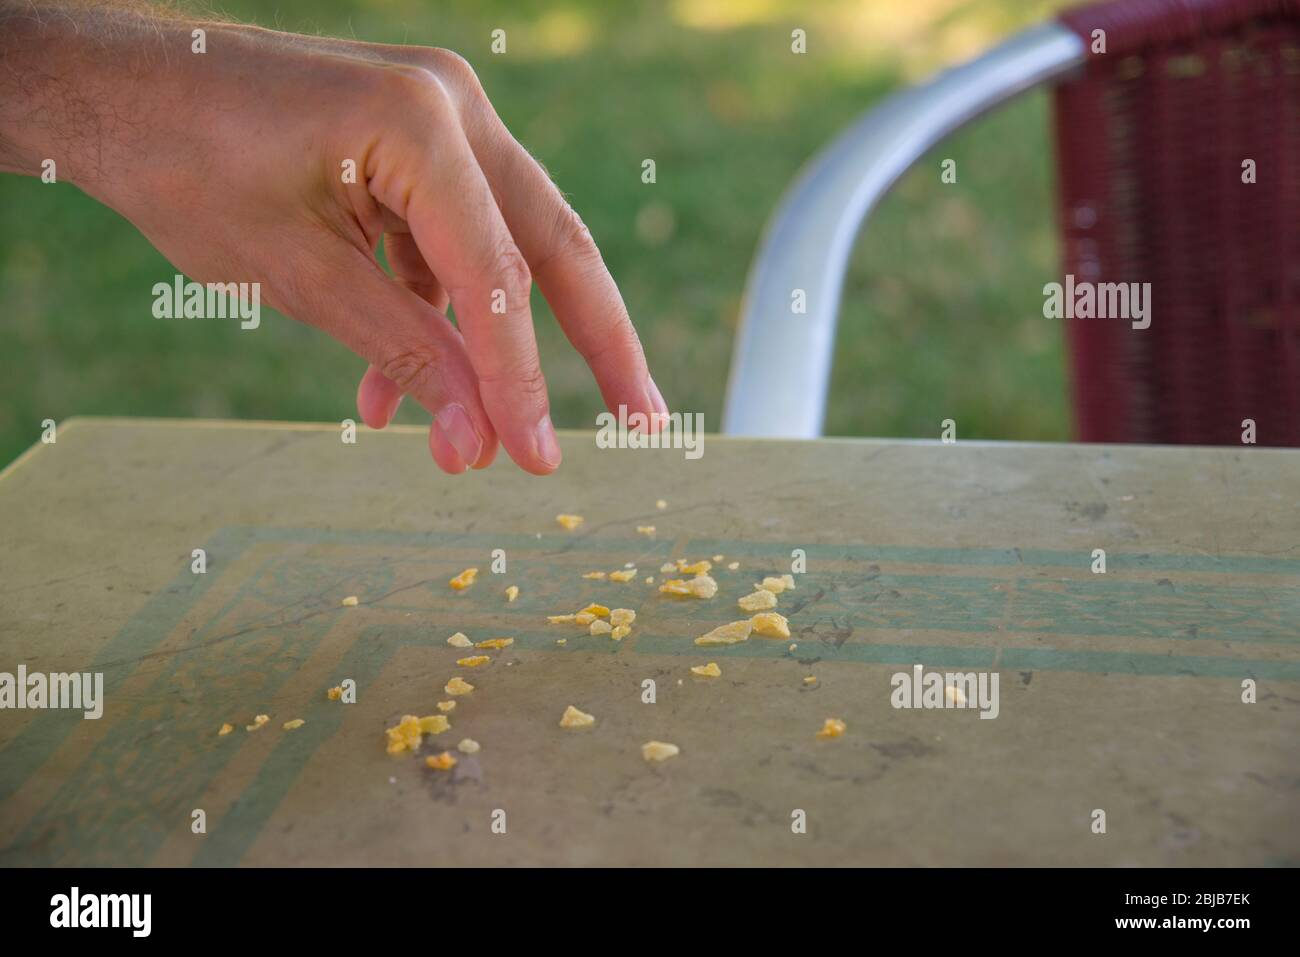 Feeding birds: man's hand dropping crumbles on the table of a terrace. Stock Photo